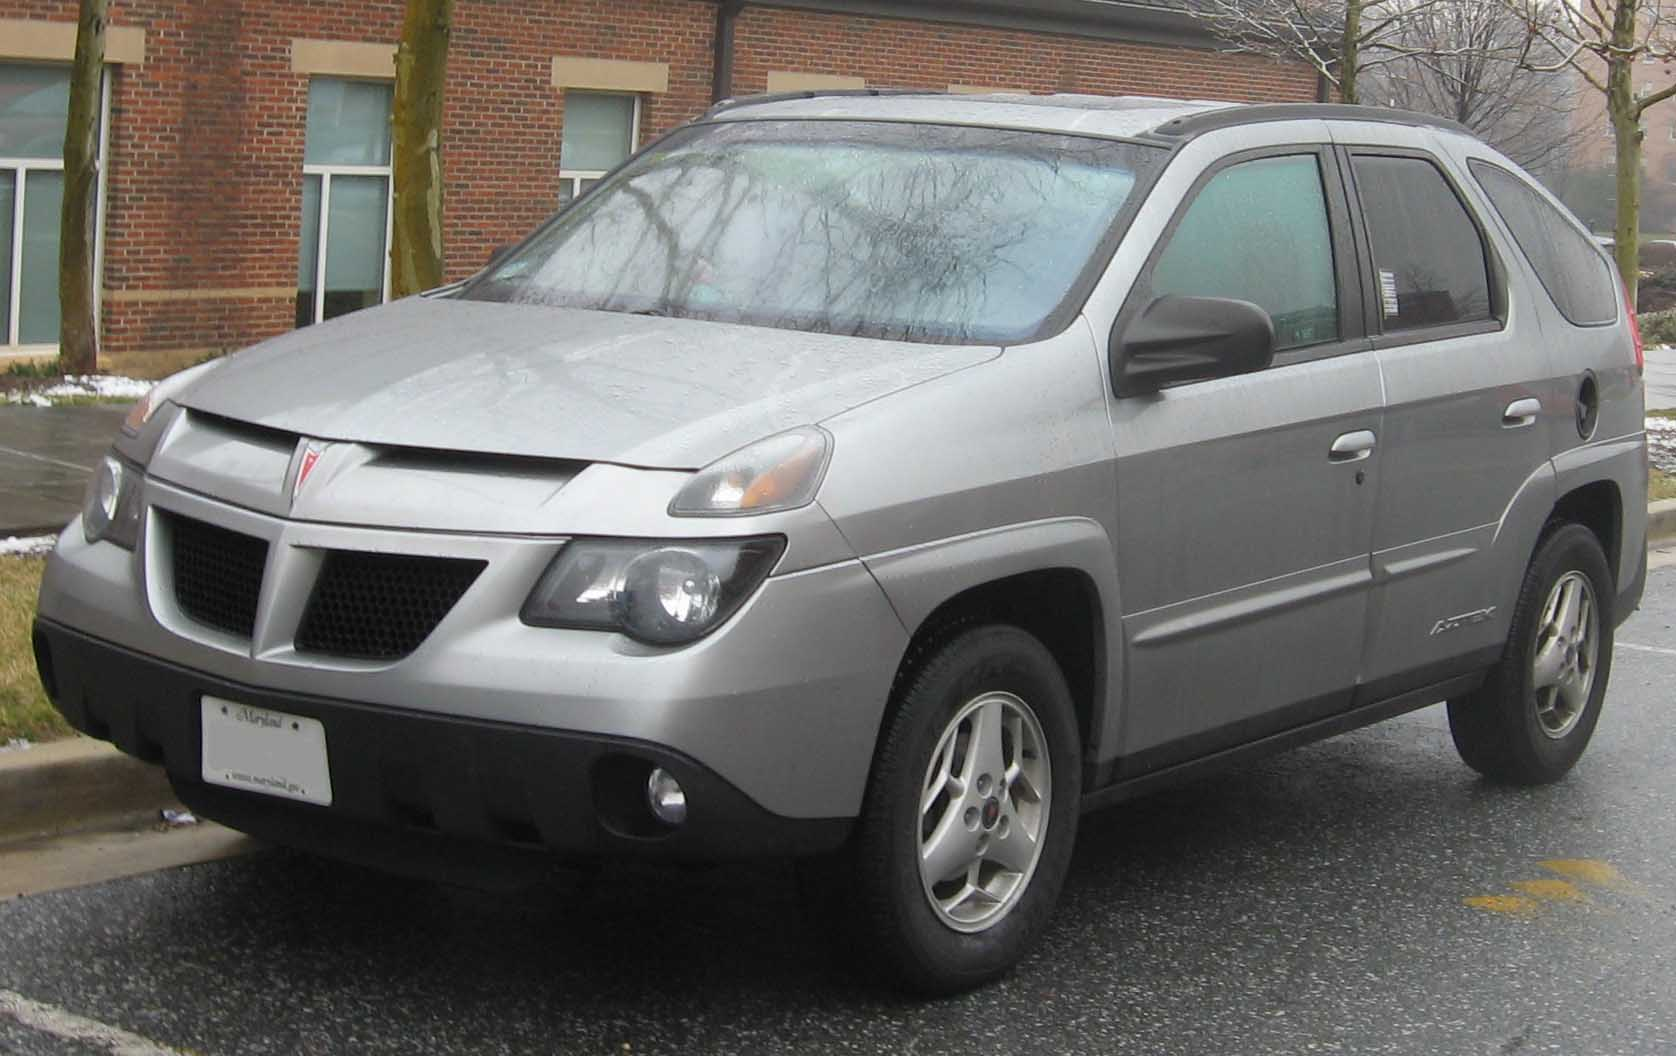 https://upload.wikimedia.org/wikipedia/commons/5/5a/2002-05_Pontiac_Aztek.jpg